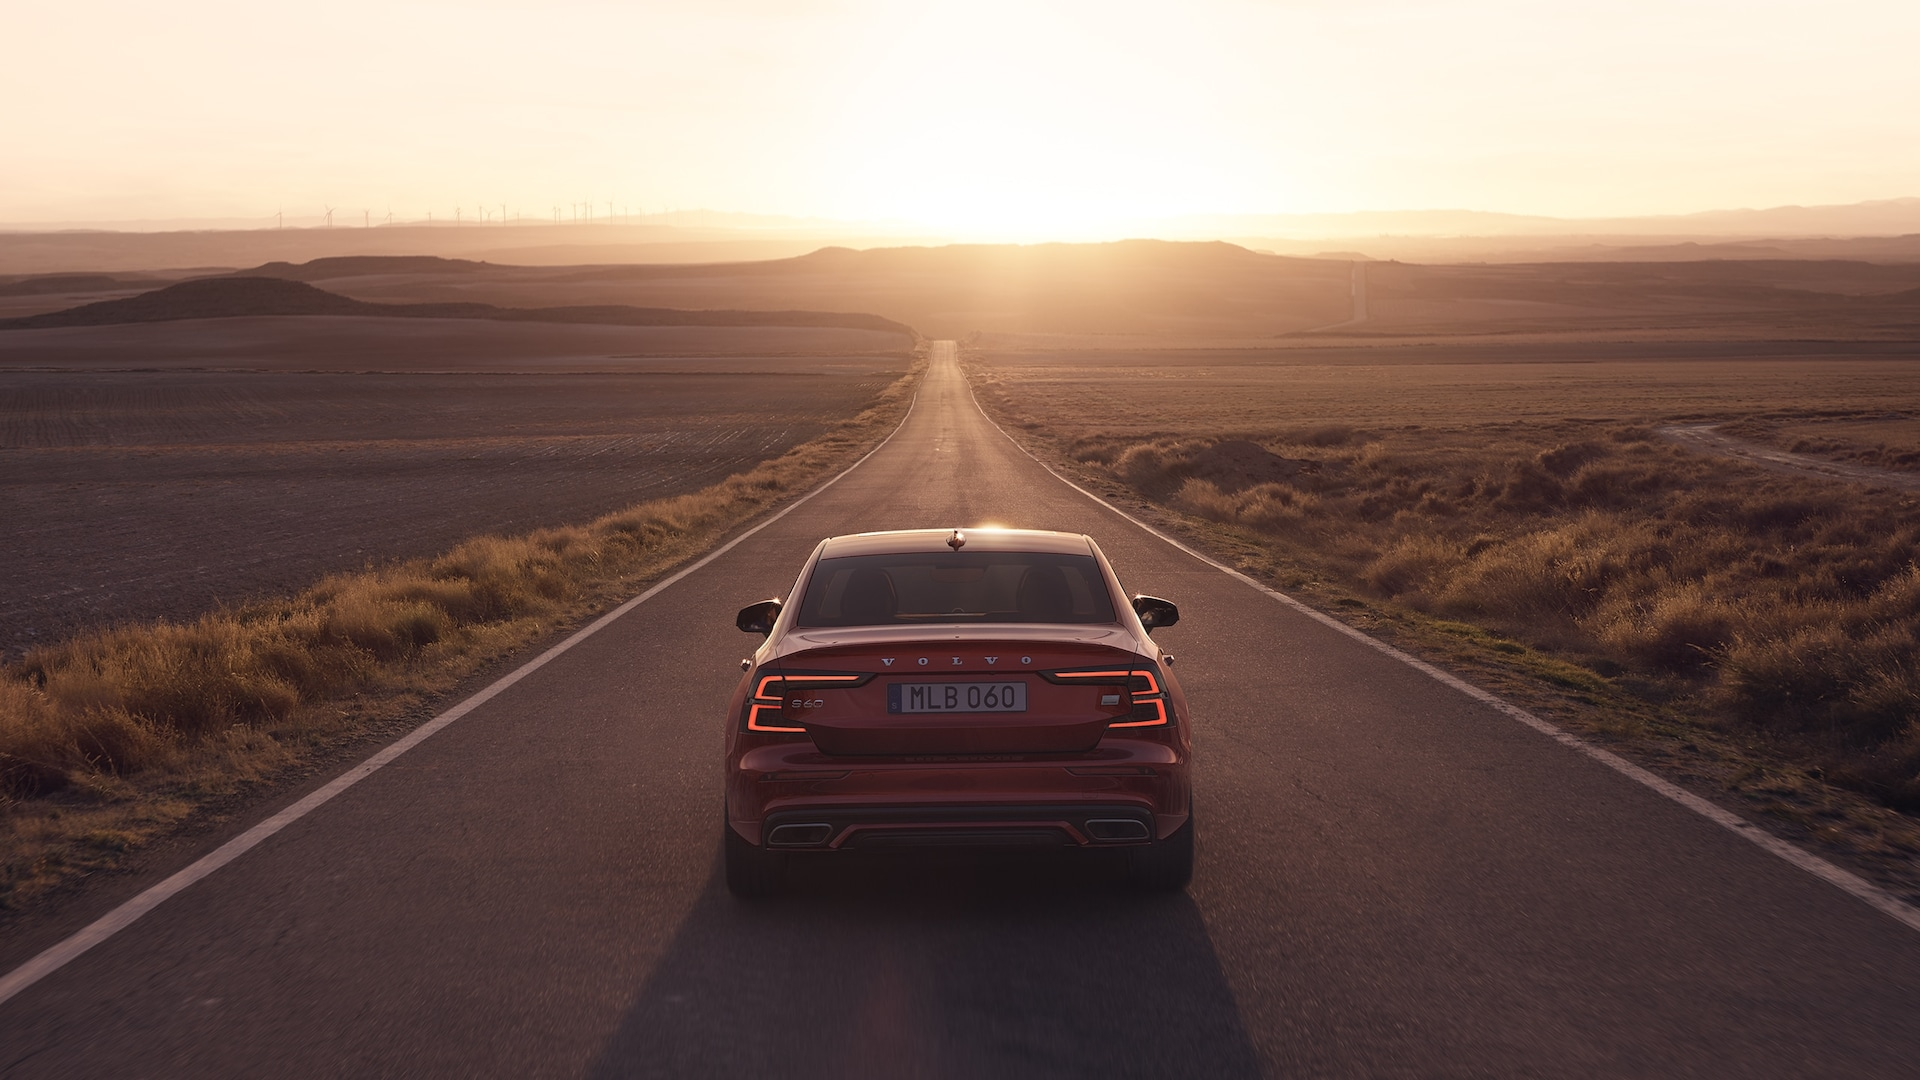 A red Volvo S60 Recharge is driving on a road during the sunset